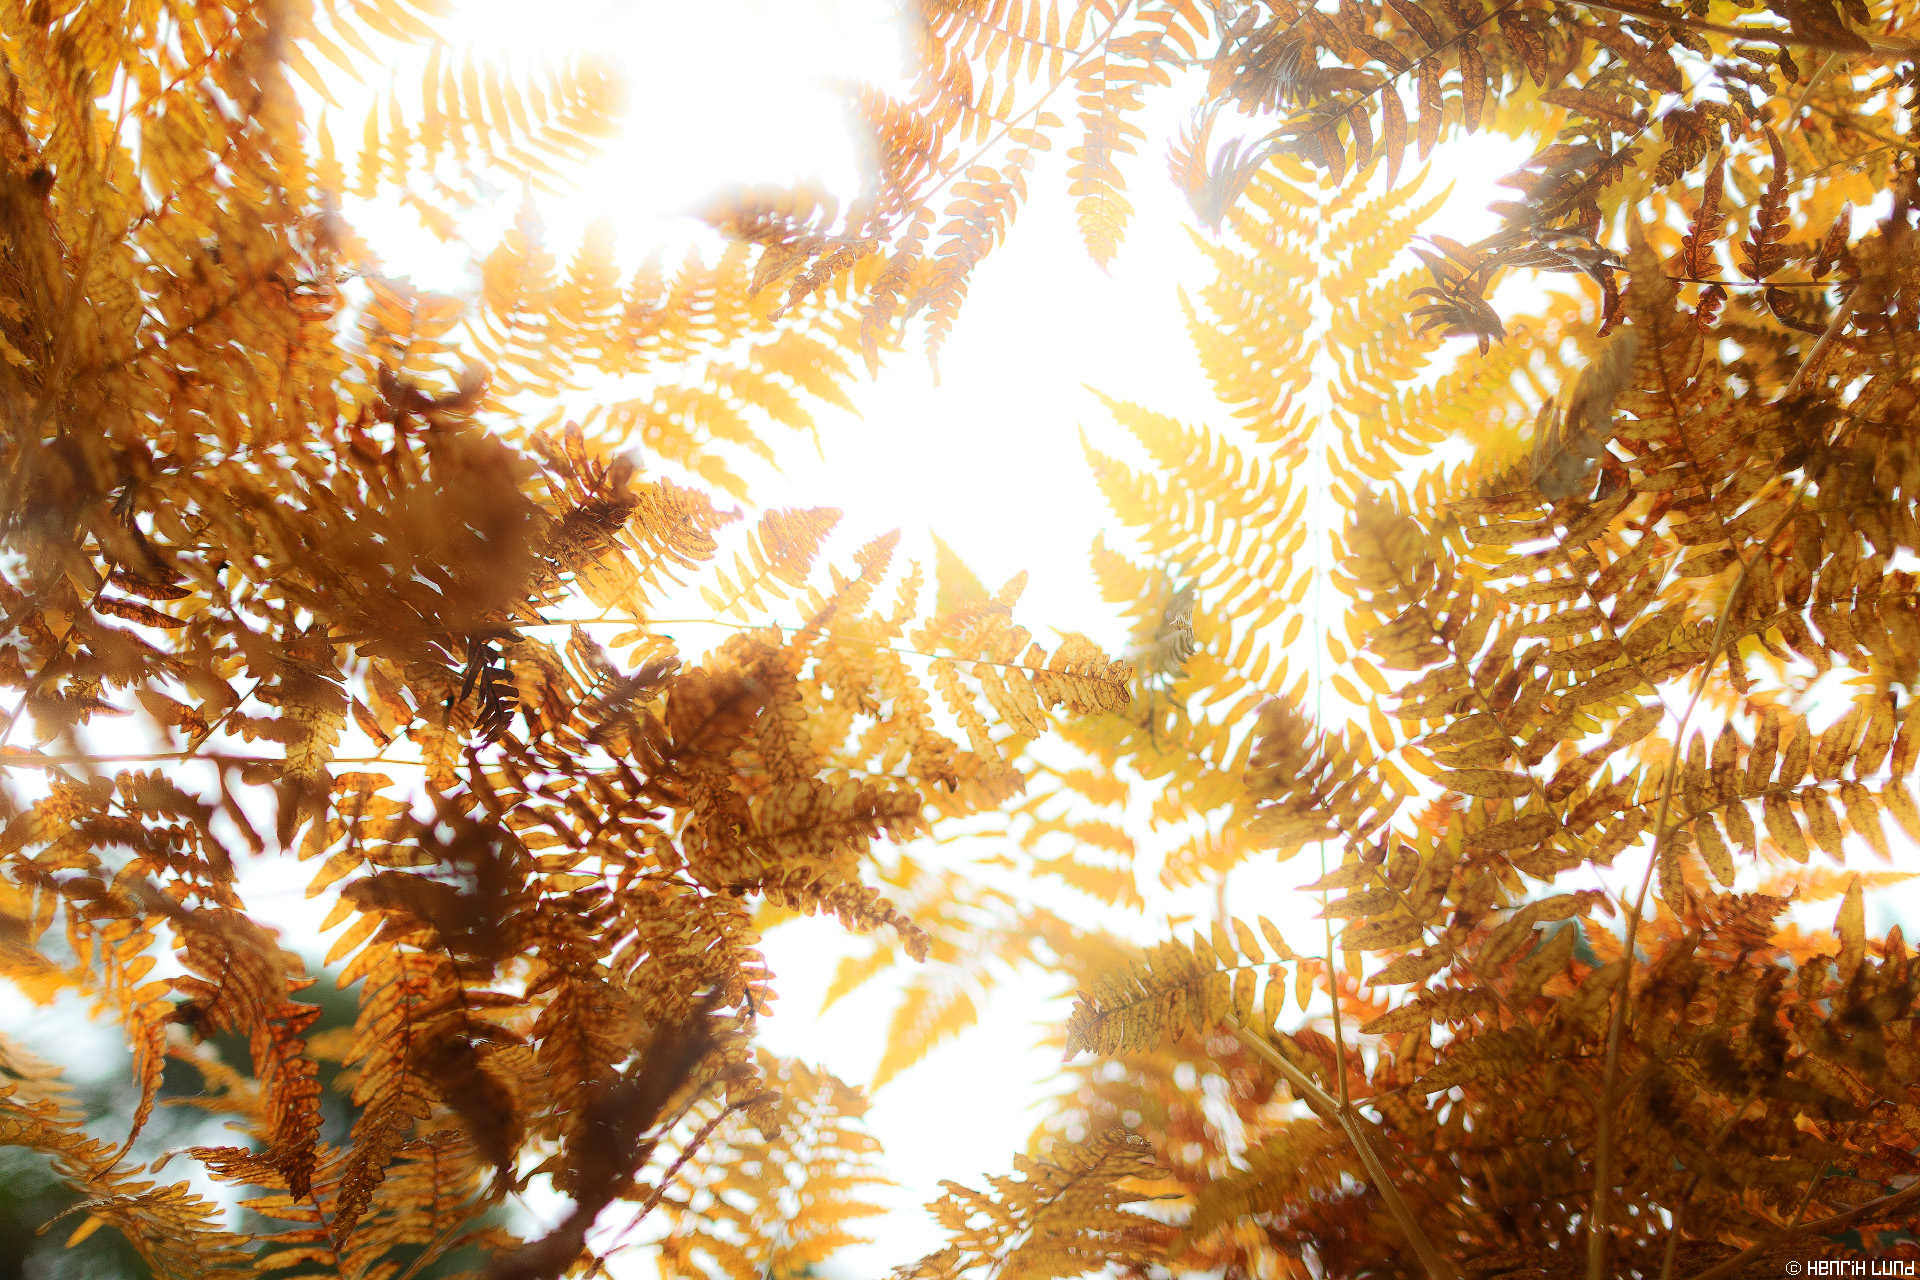 Ferns photographed straight from below. Lovisa, Finland, September 2014.